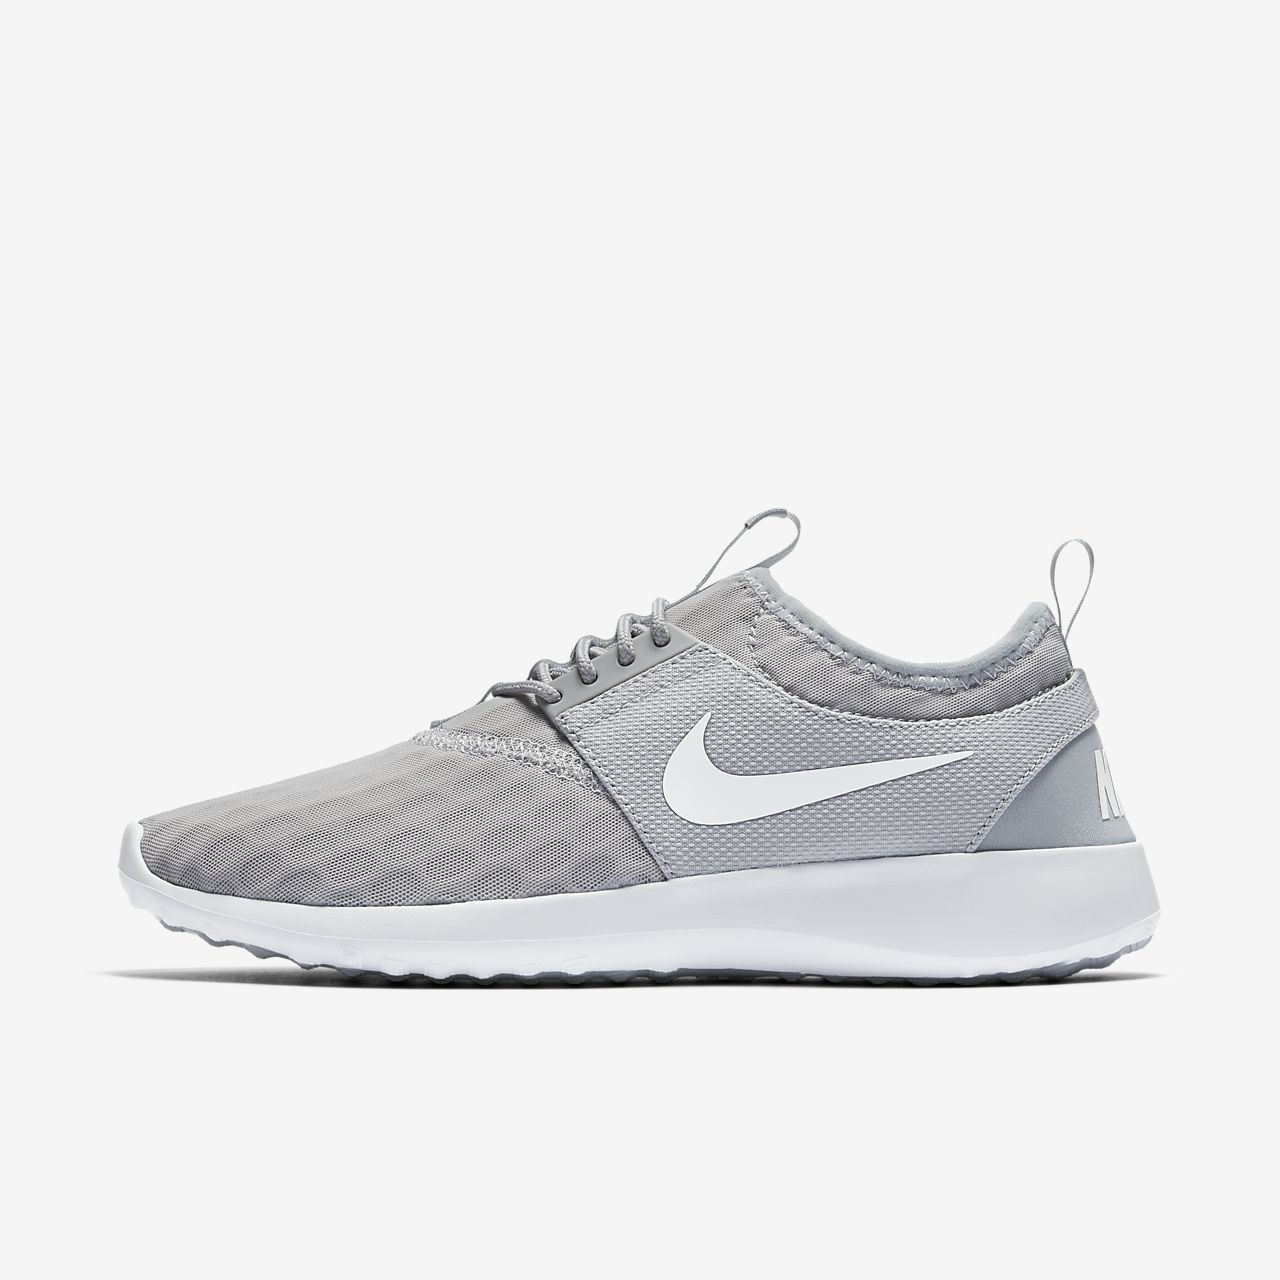 white nike sneakers for women buy nike sneakers shoes. Black Bedroom Furniture Sets. Home Design Ideas